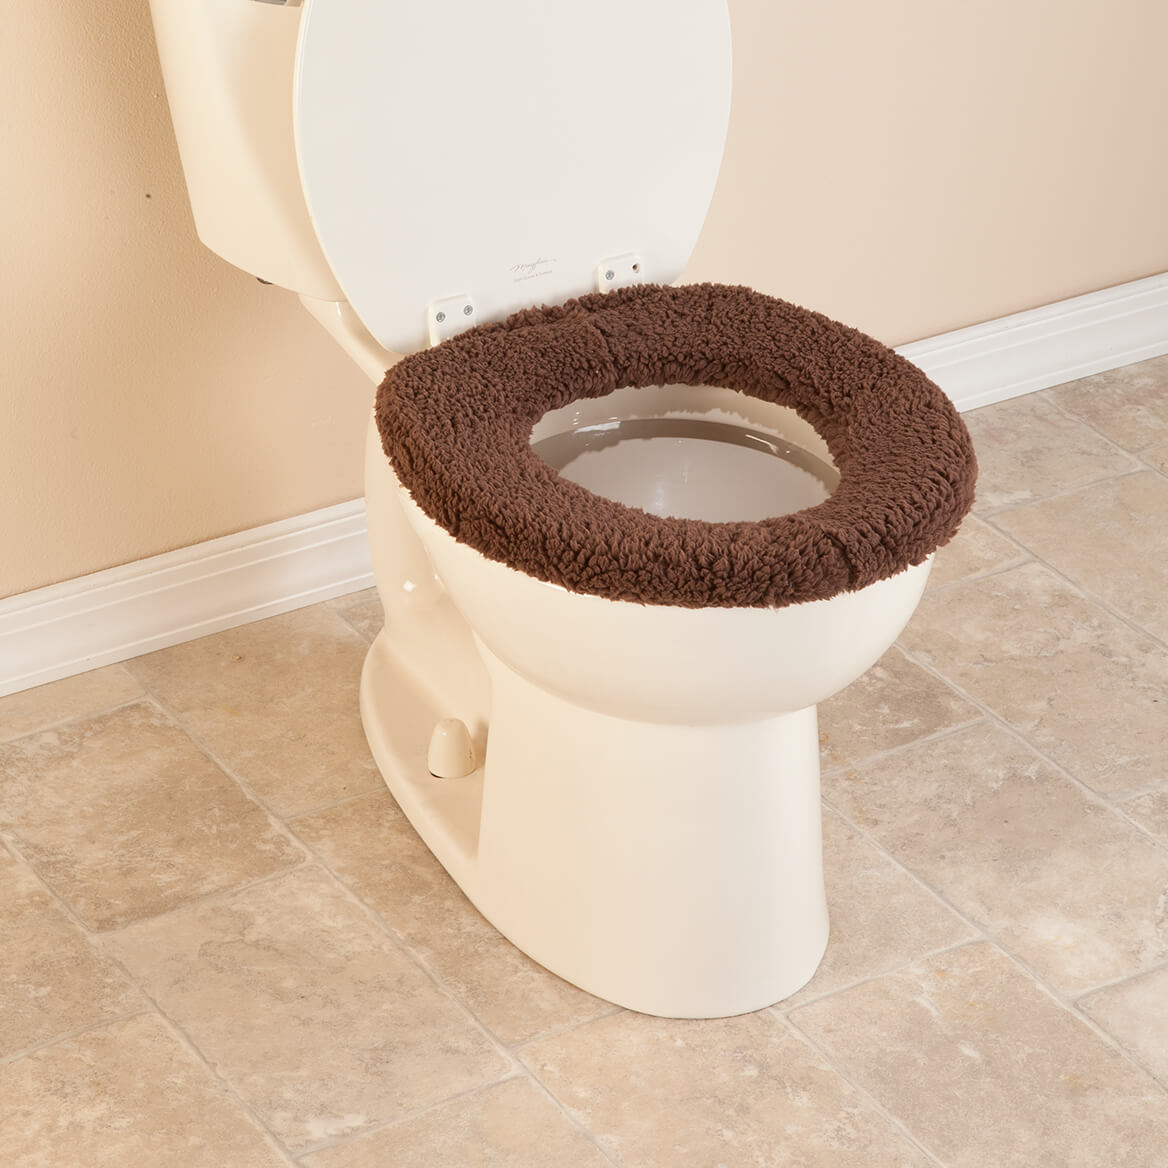 Toilet Seat Covers - Padded Toilet Seat Cover - Home - Miles Kimball